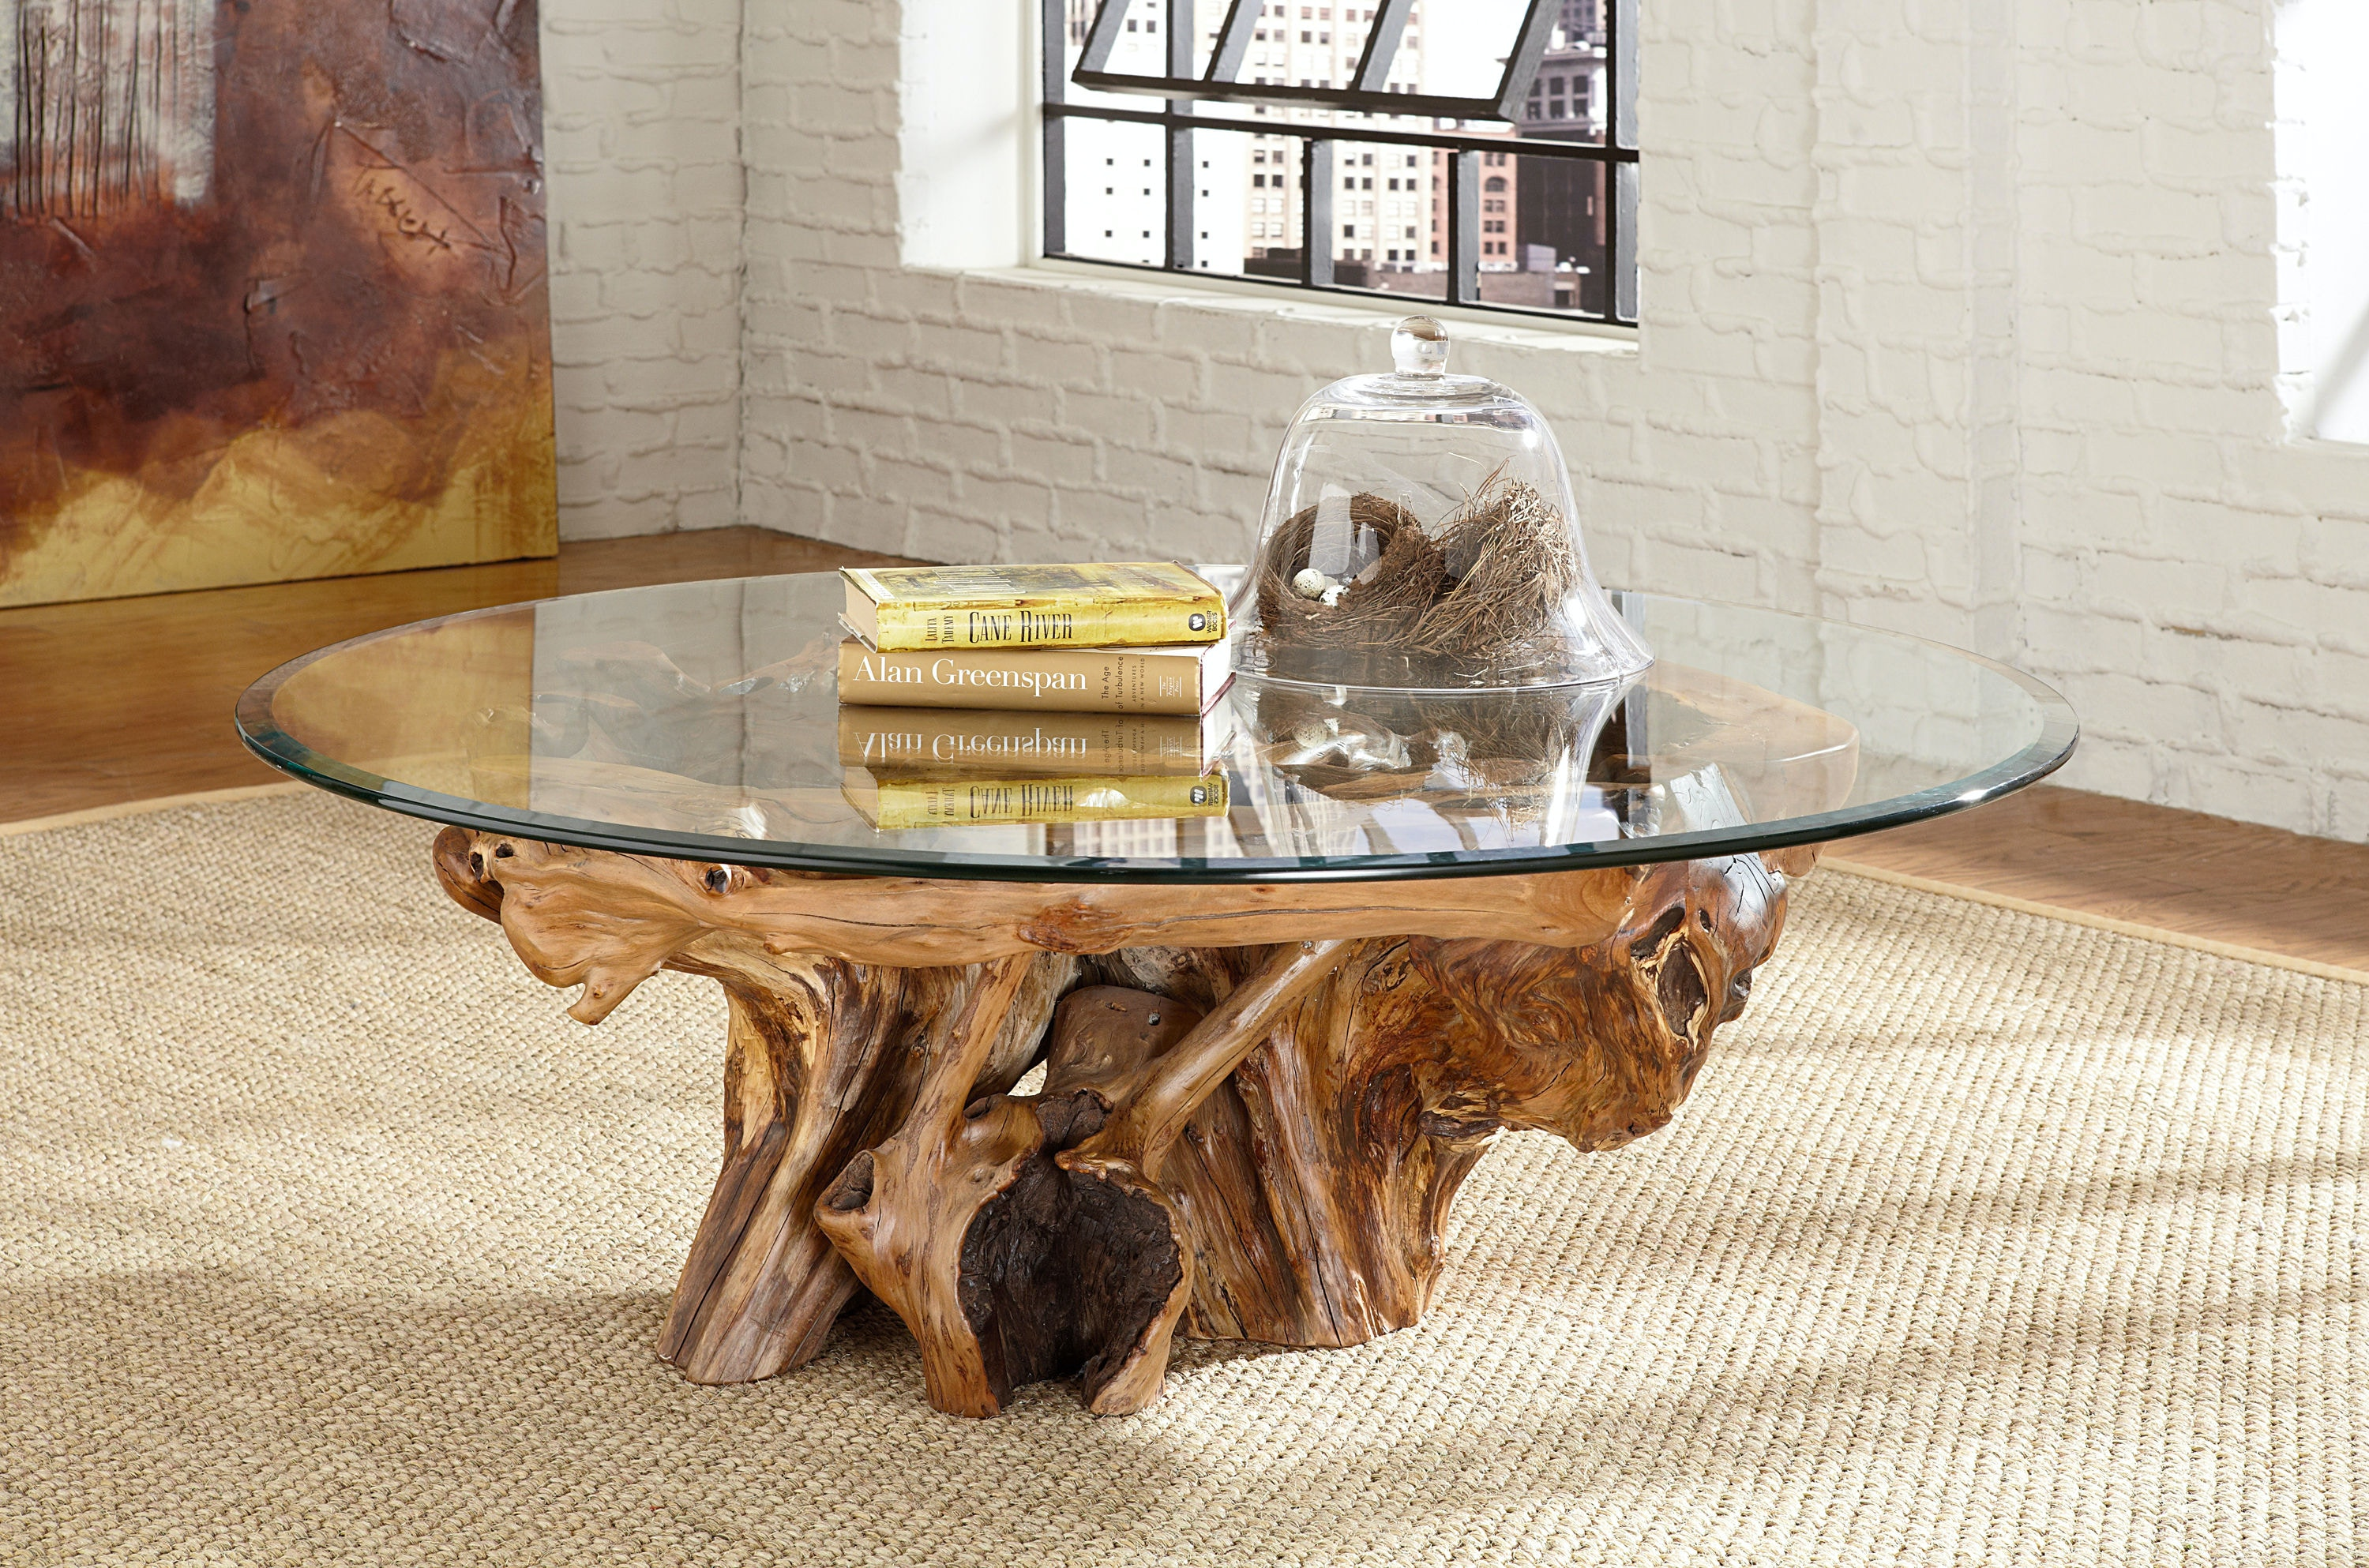 Arboles Round Glass Top Root Ball Coffee Table KT:34066